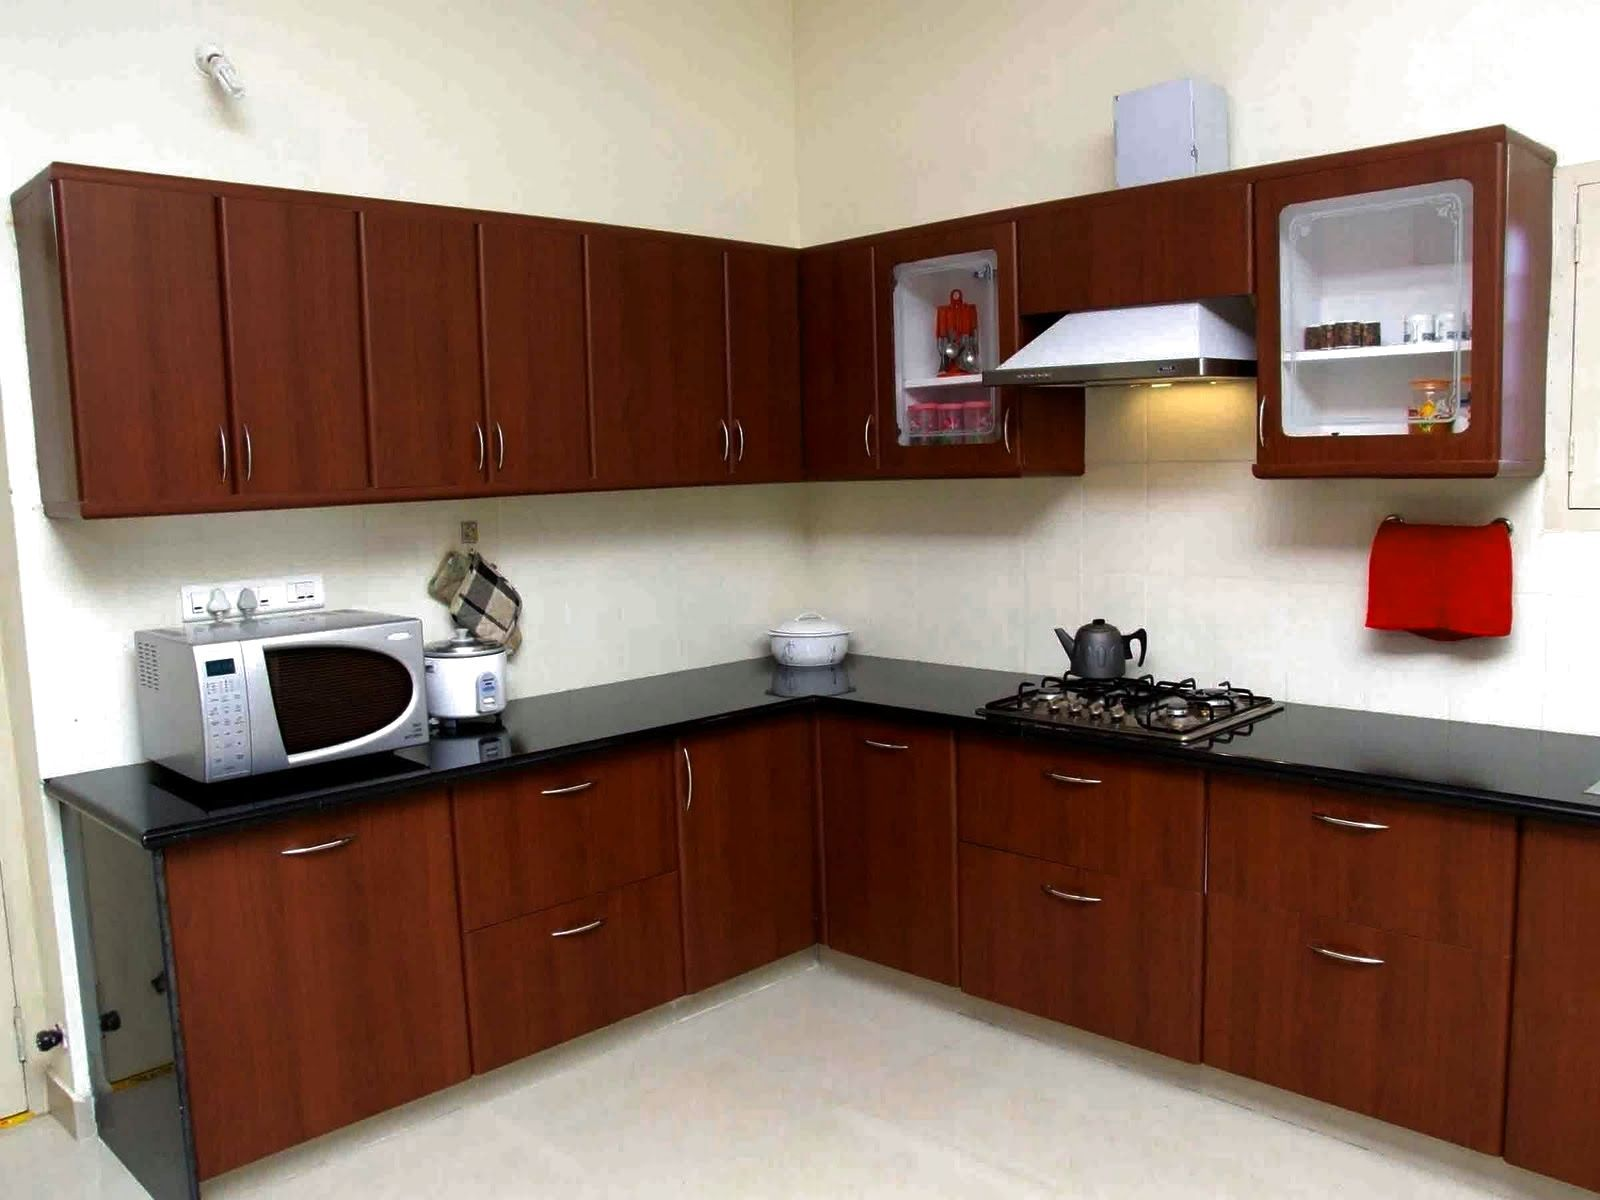 Furniture Design Kitchen India design kitchen cabinets india ideas - kitchen cabinet design